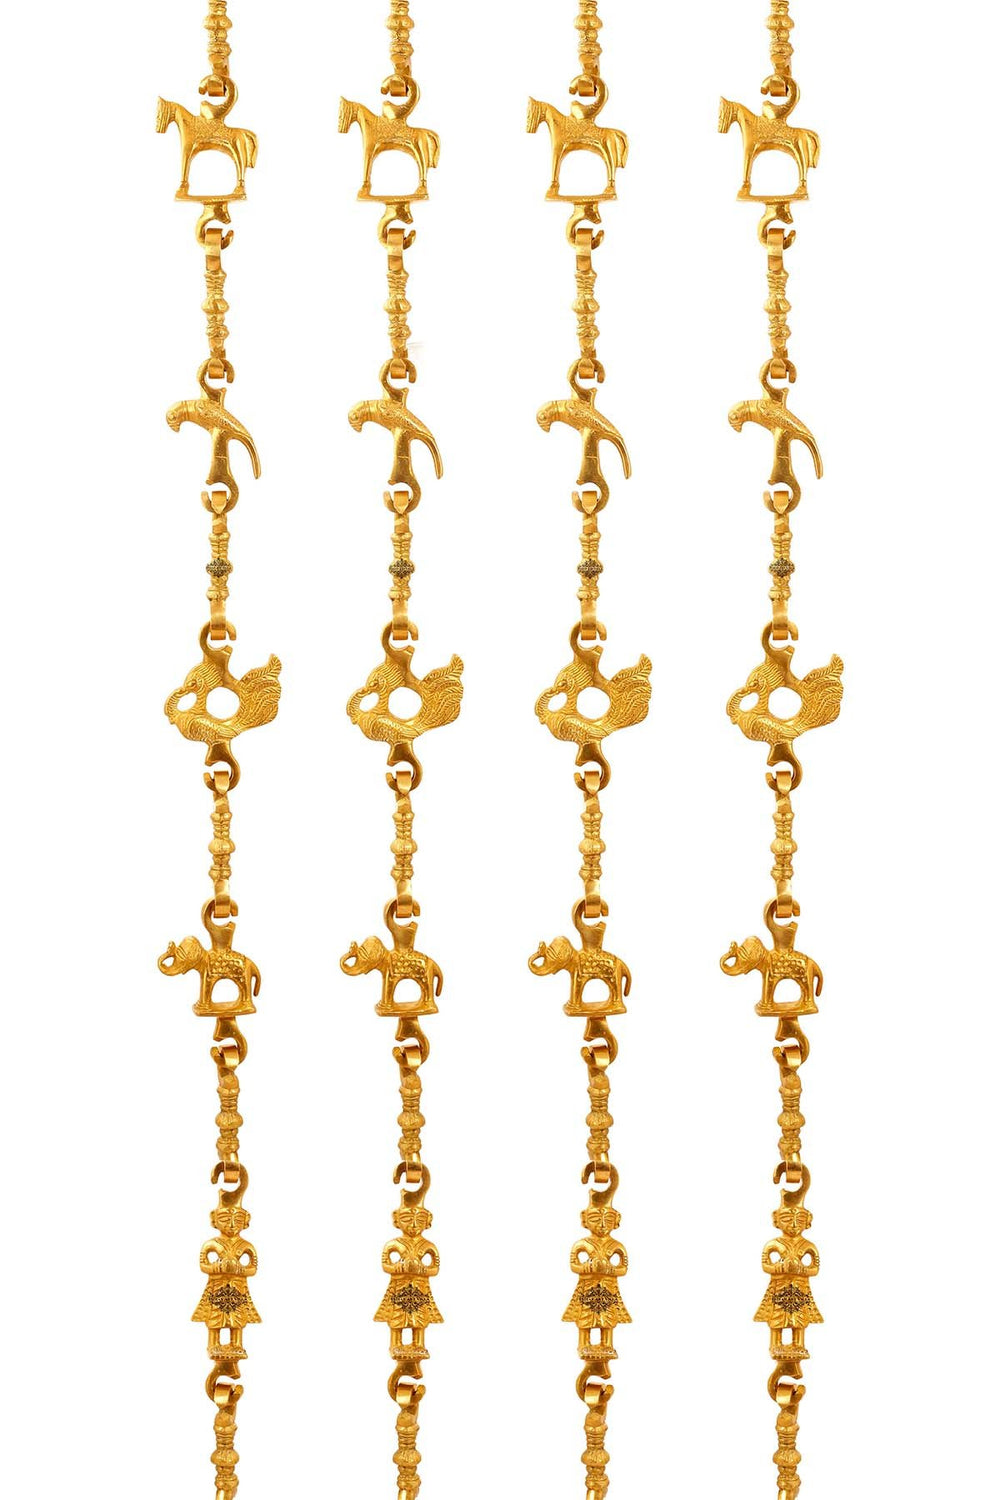 "Brass Swing Jhula Chain | Design:- Horse-Parrot-Peacock-Men Guard-Elephant | Indoor Hanging Link | Approx 76.9"" Each 